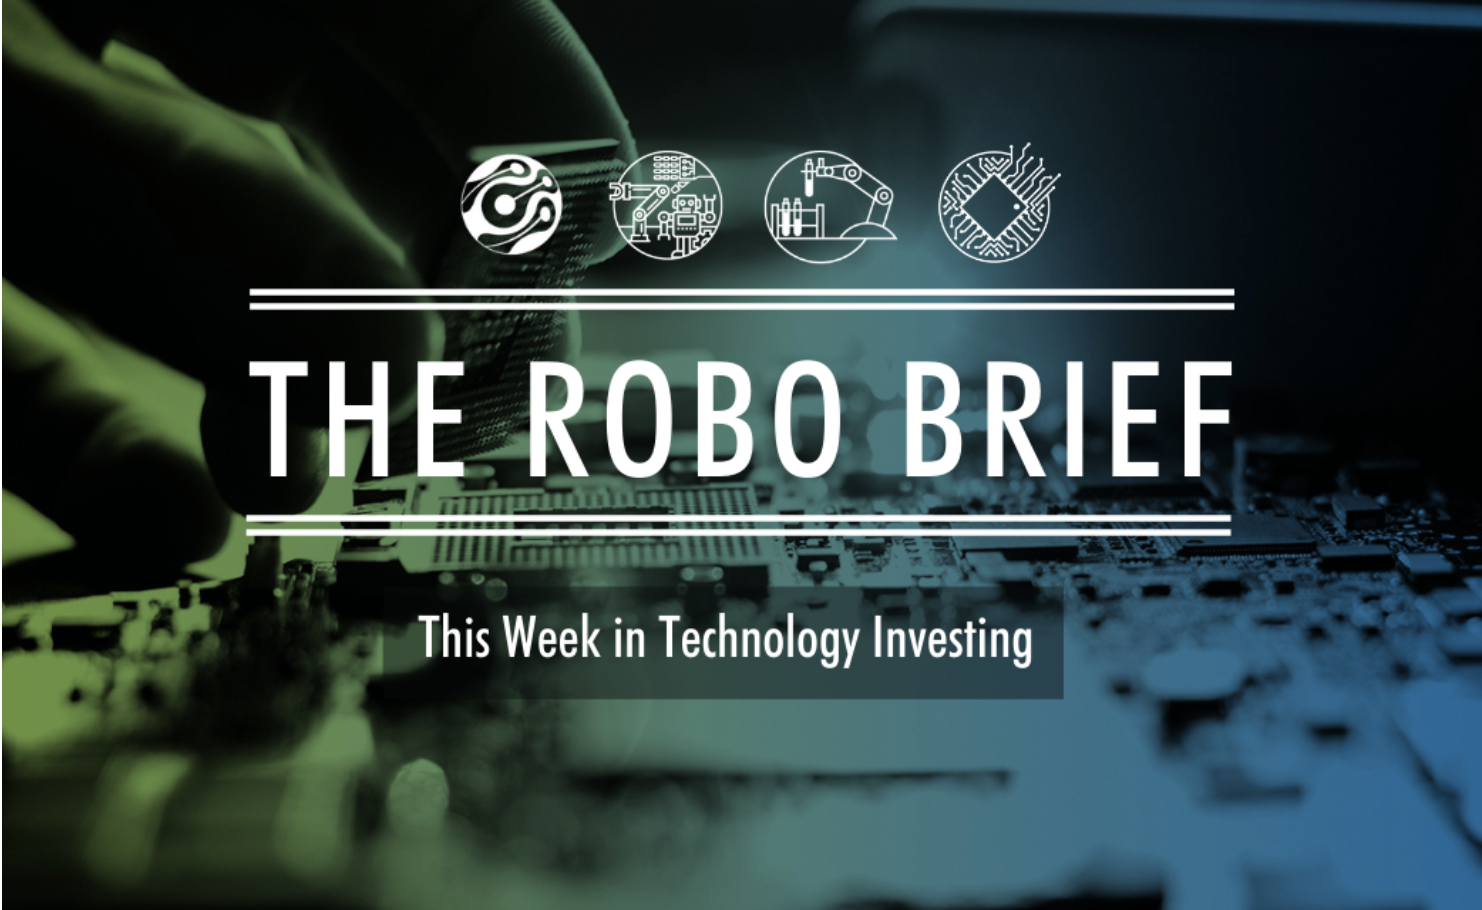 ROBO Brief: Moderna Makes A Difference, Grubhub Acquired, and RBR50